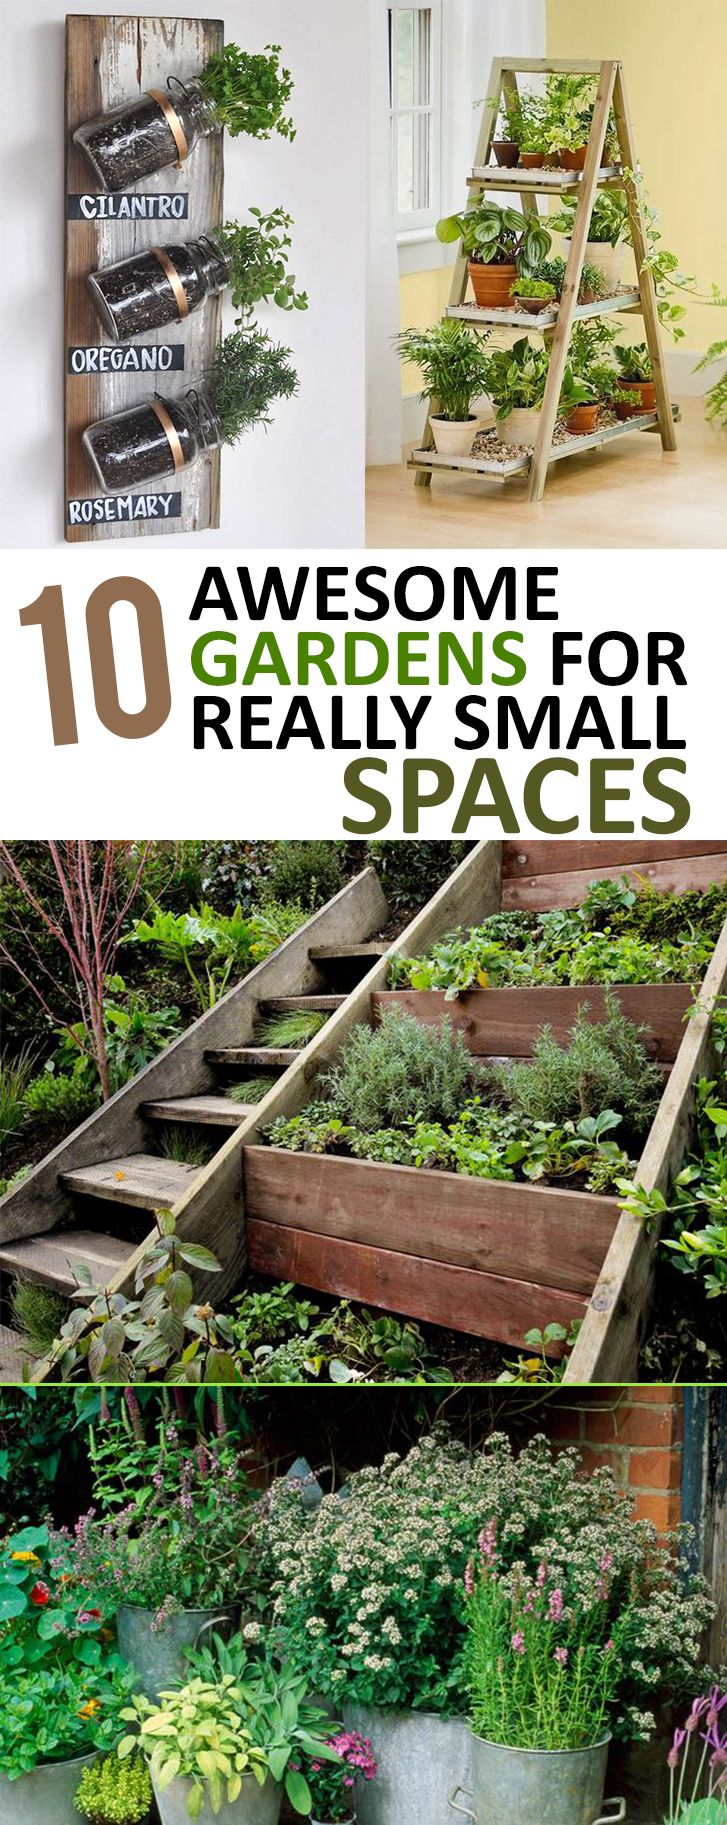 Garden Ideas In Small Spaces 10 awesome gardens for really small spaces | small spaces, gardens